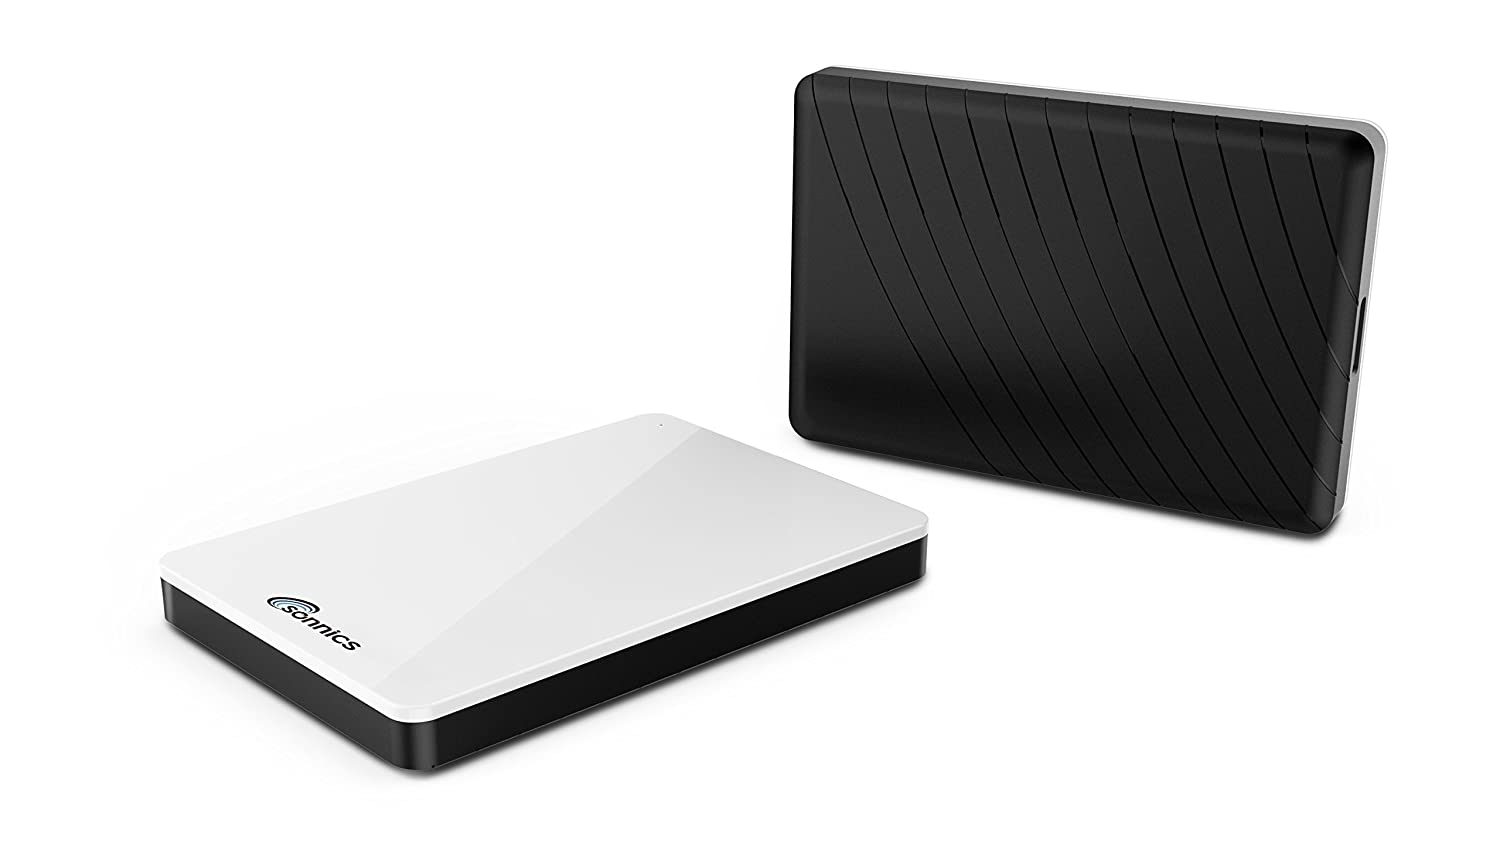 SSD Smart TV and XBOX 360 Sonnics 256GB White Portable External Solid State Drive USB 3.0 super fast transfer speed for use with Windows PC Apple Mac